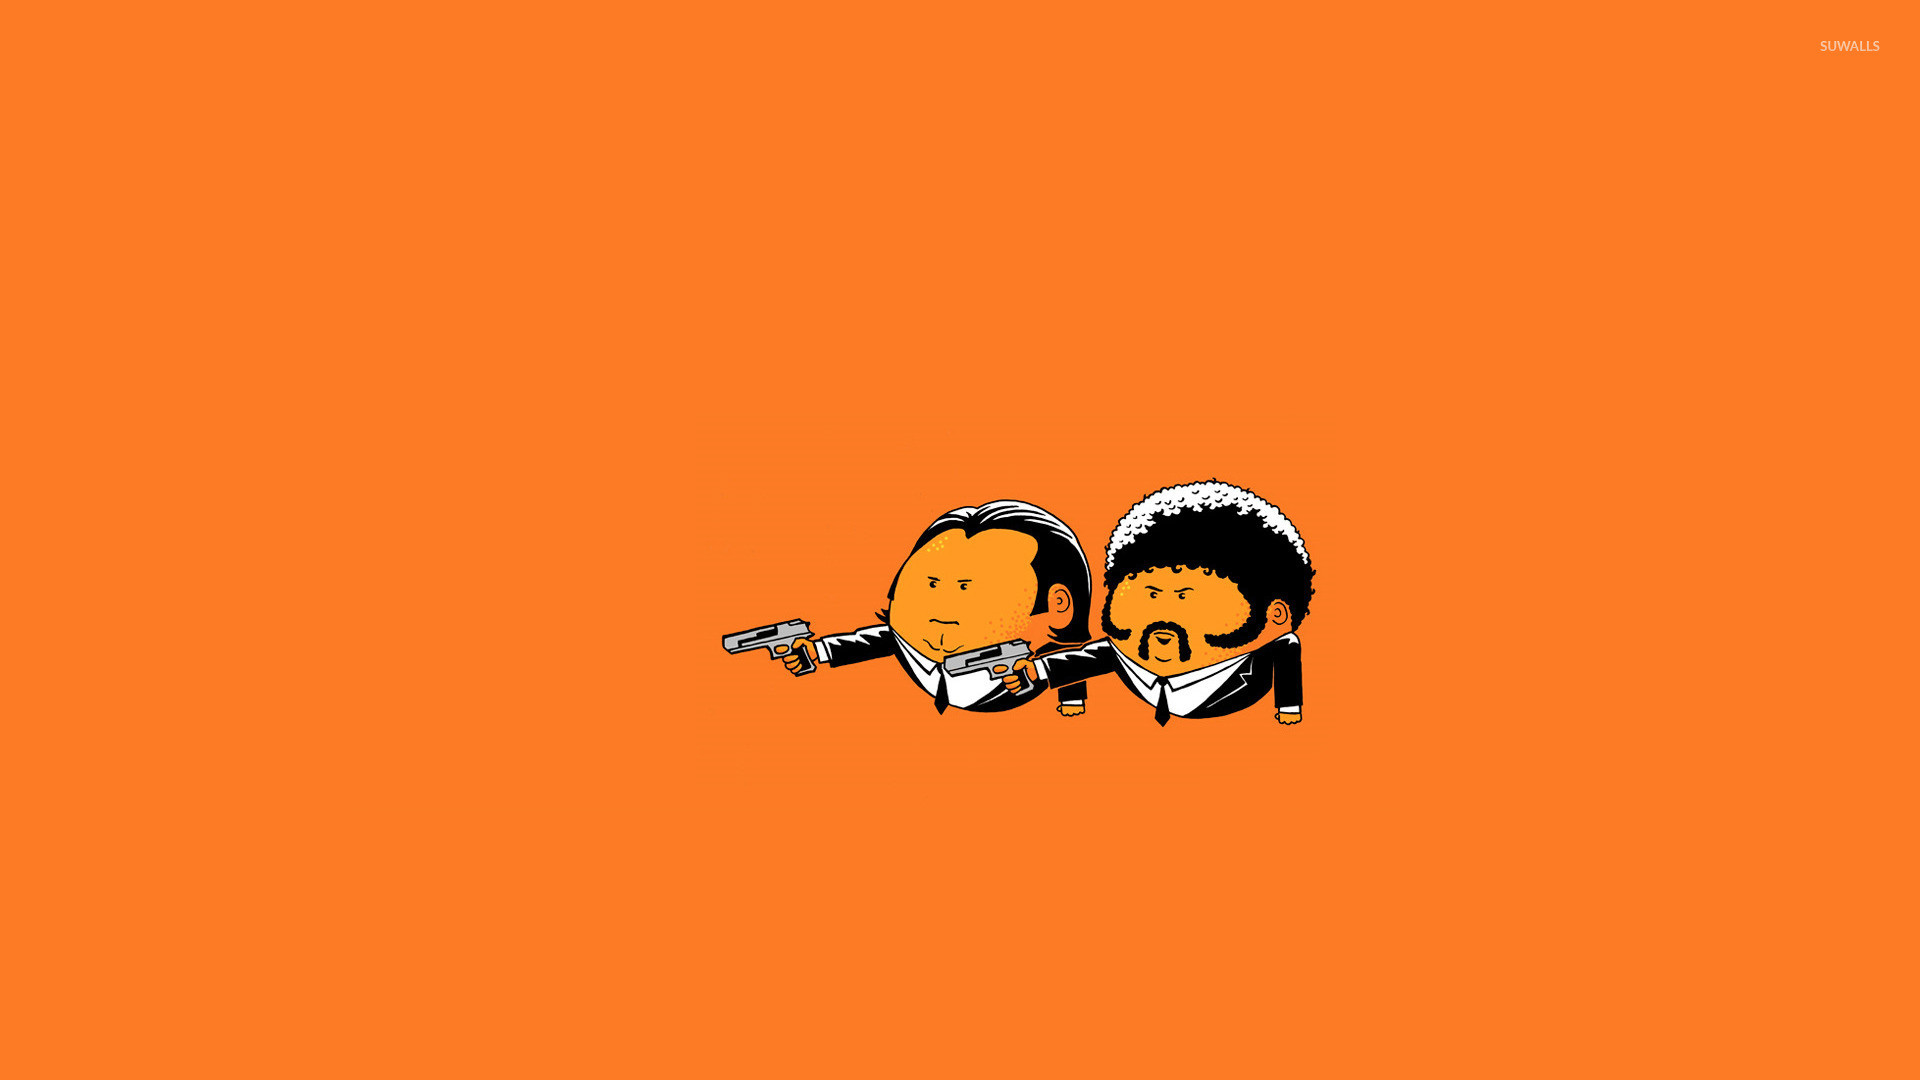 1920x1080 Pulp Fiction Oranges wallpaper - Funny wallpapers - #15659